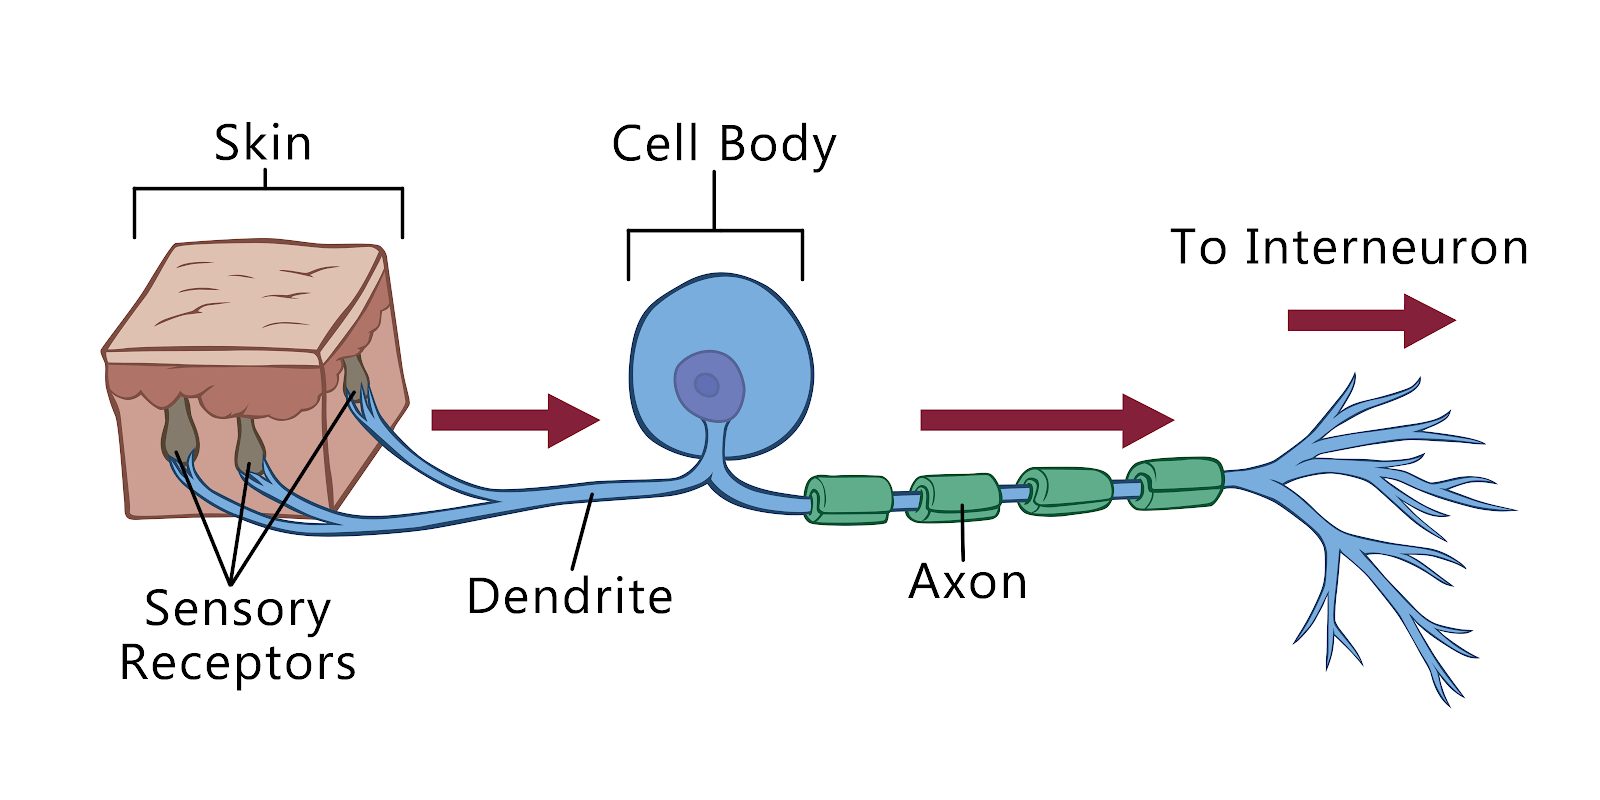 hight resolution of interneurons connect the sensory neurons with the motor neurons